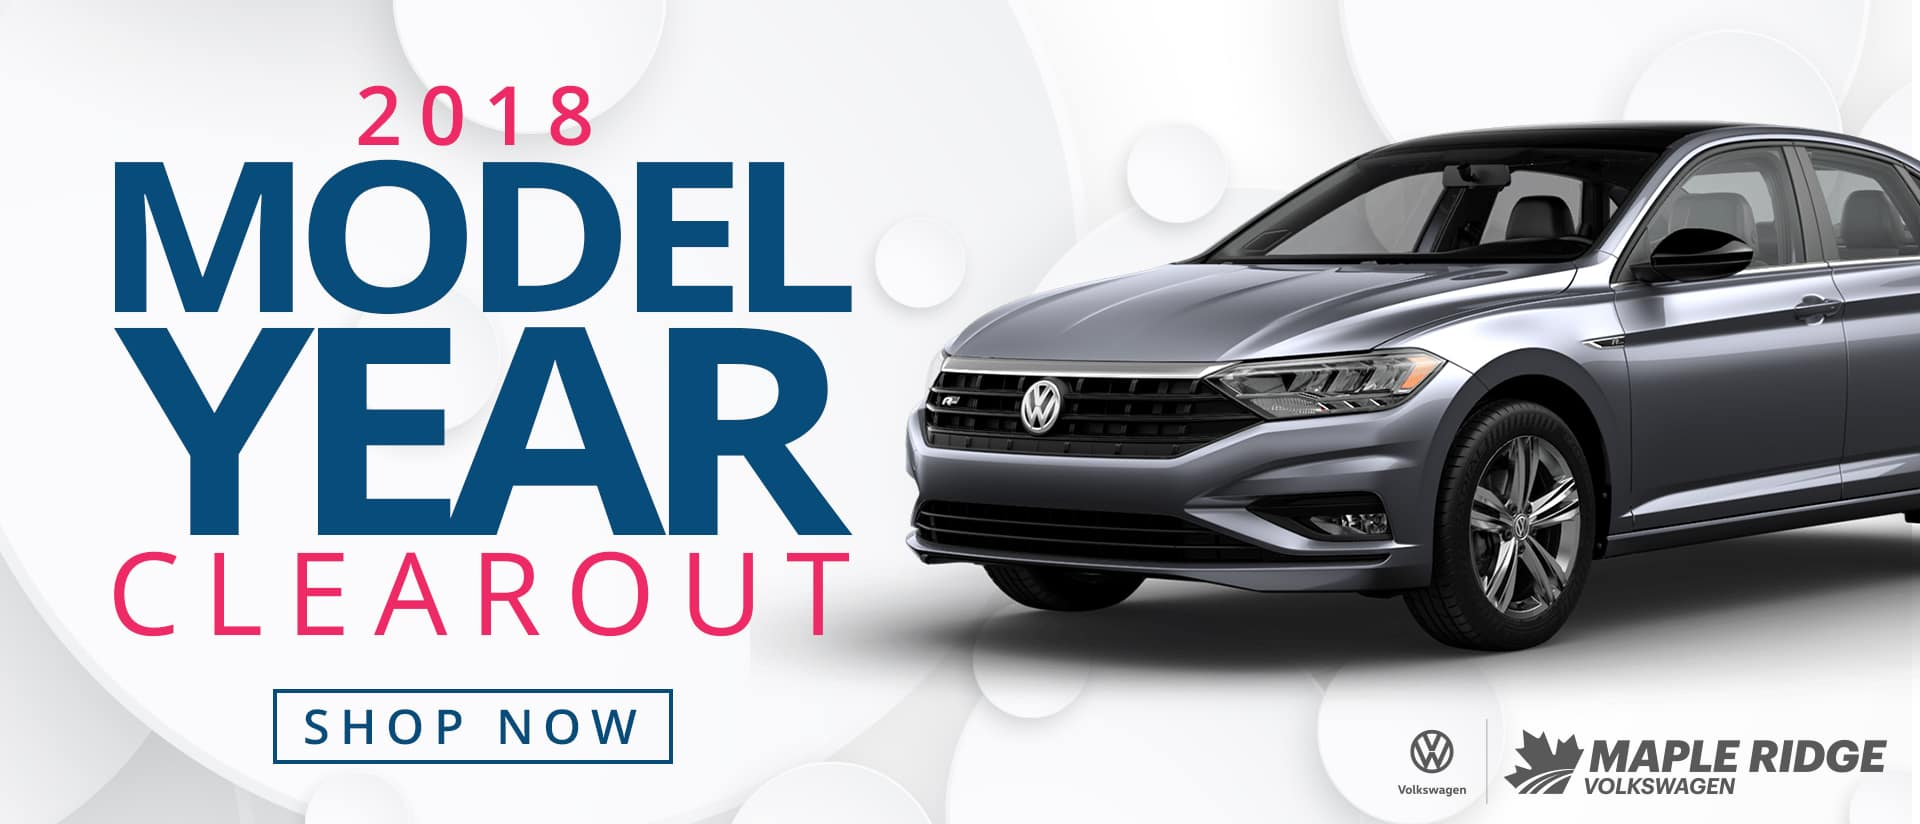 The 2018 Model Year Clearout is on now at Maple Ridge Volkswagen! Stop by today and save thousands on instock 2018 models!